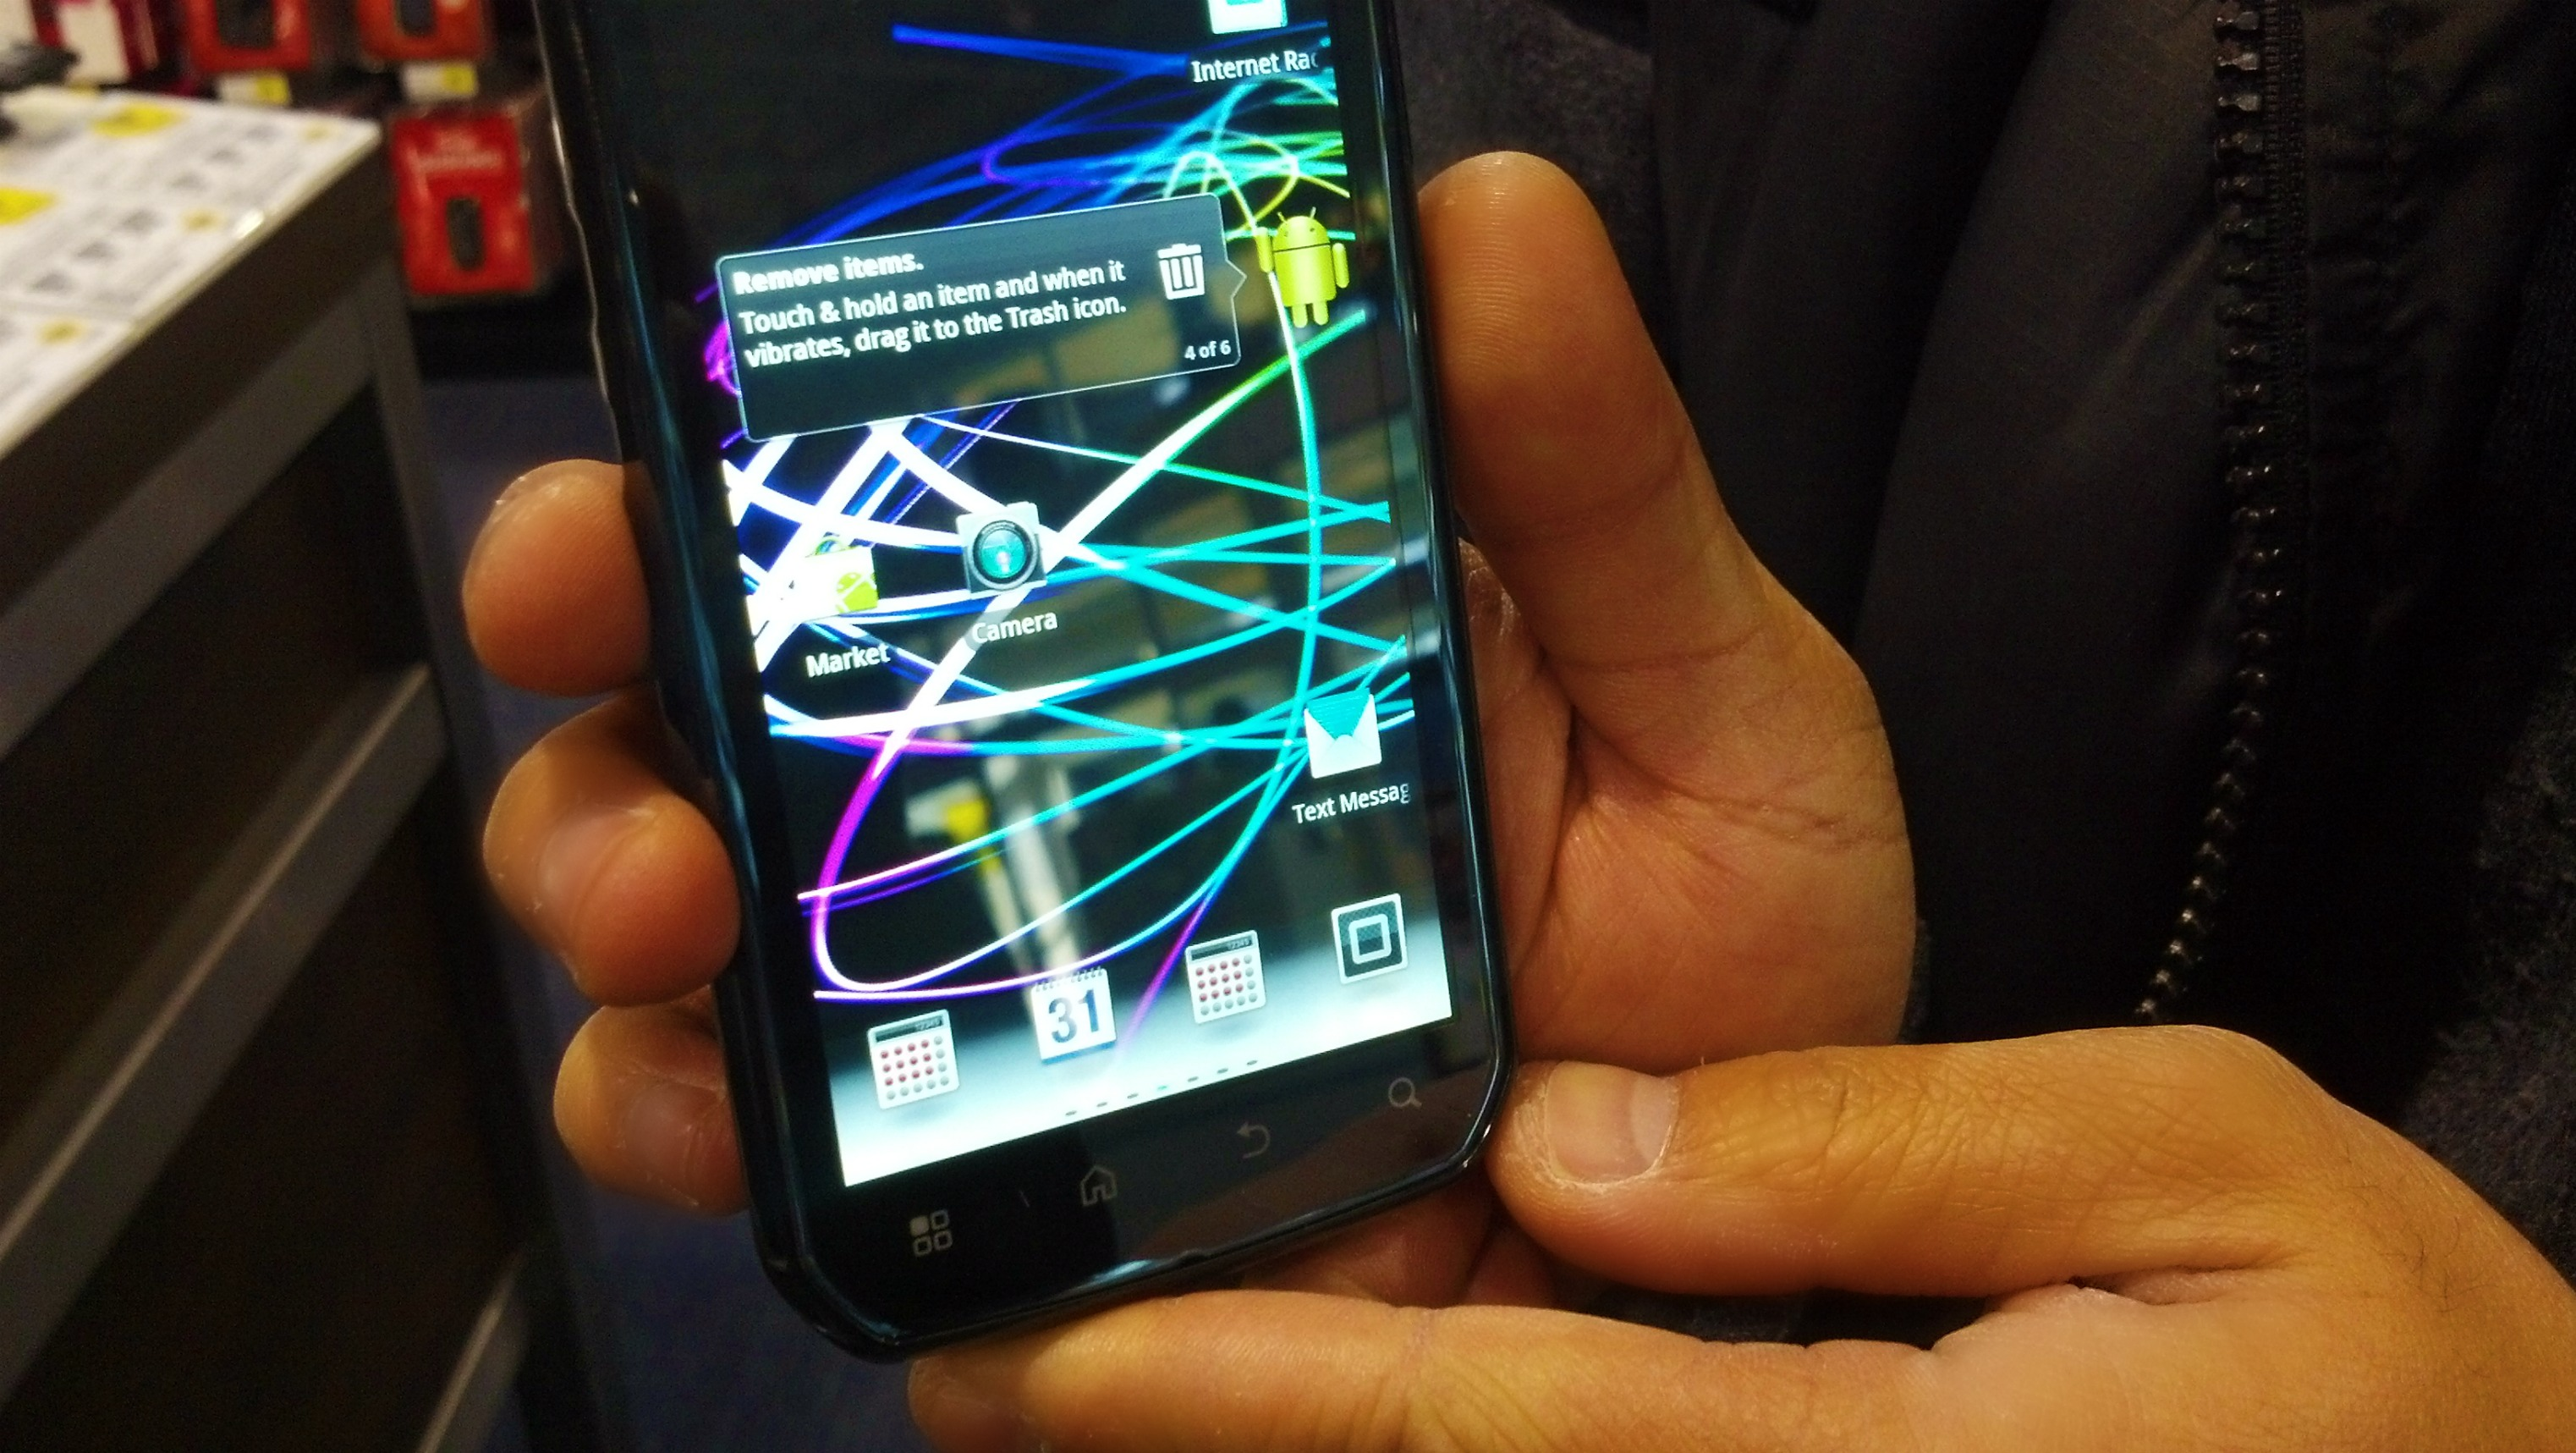 A Glance at the Motorola Photon. #MotoCalyp